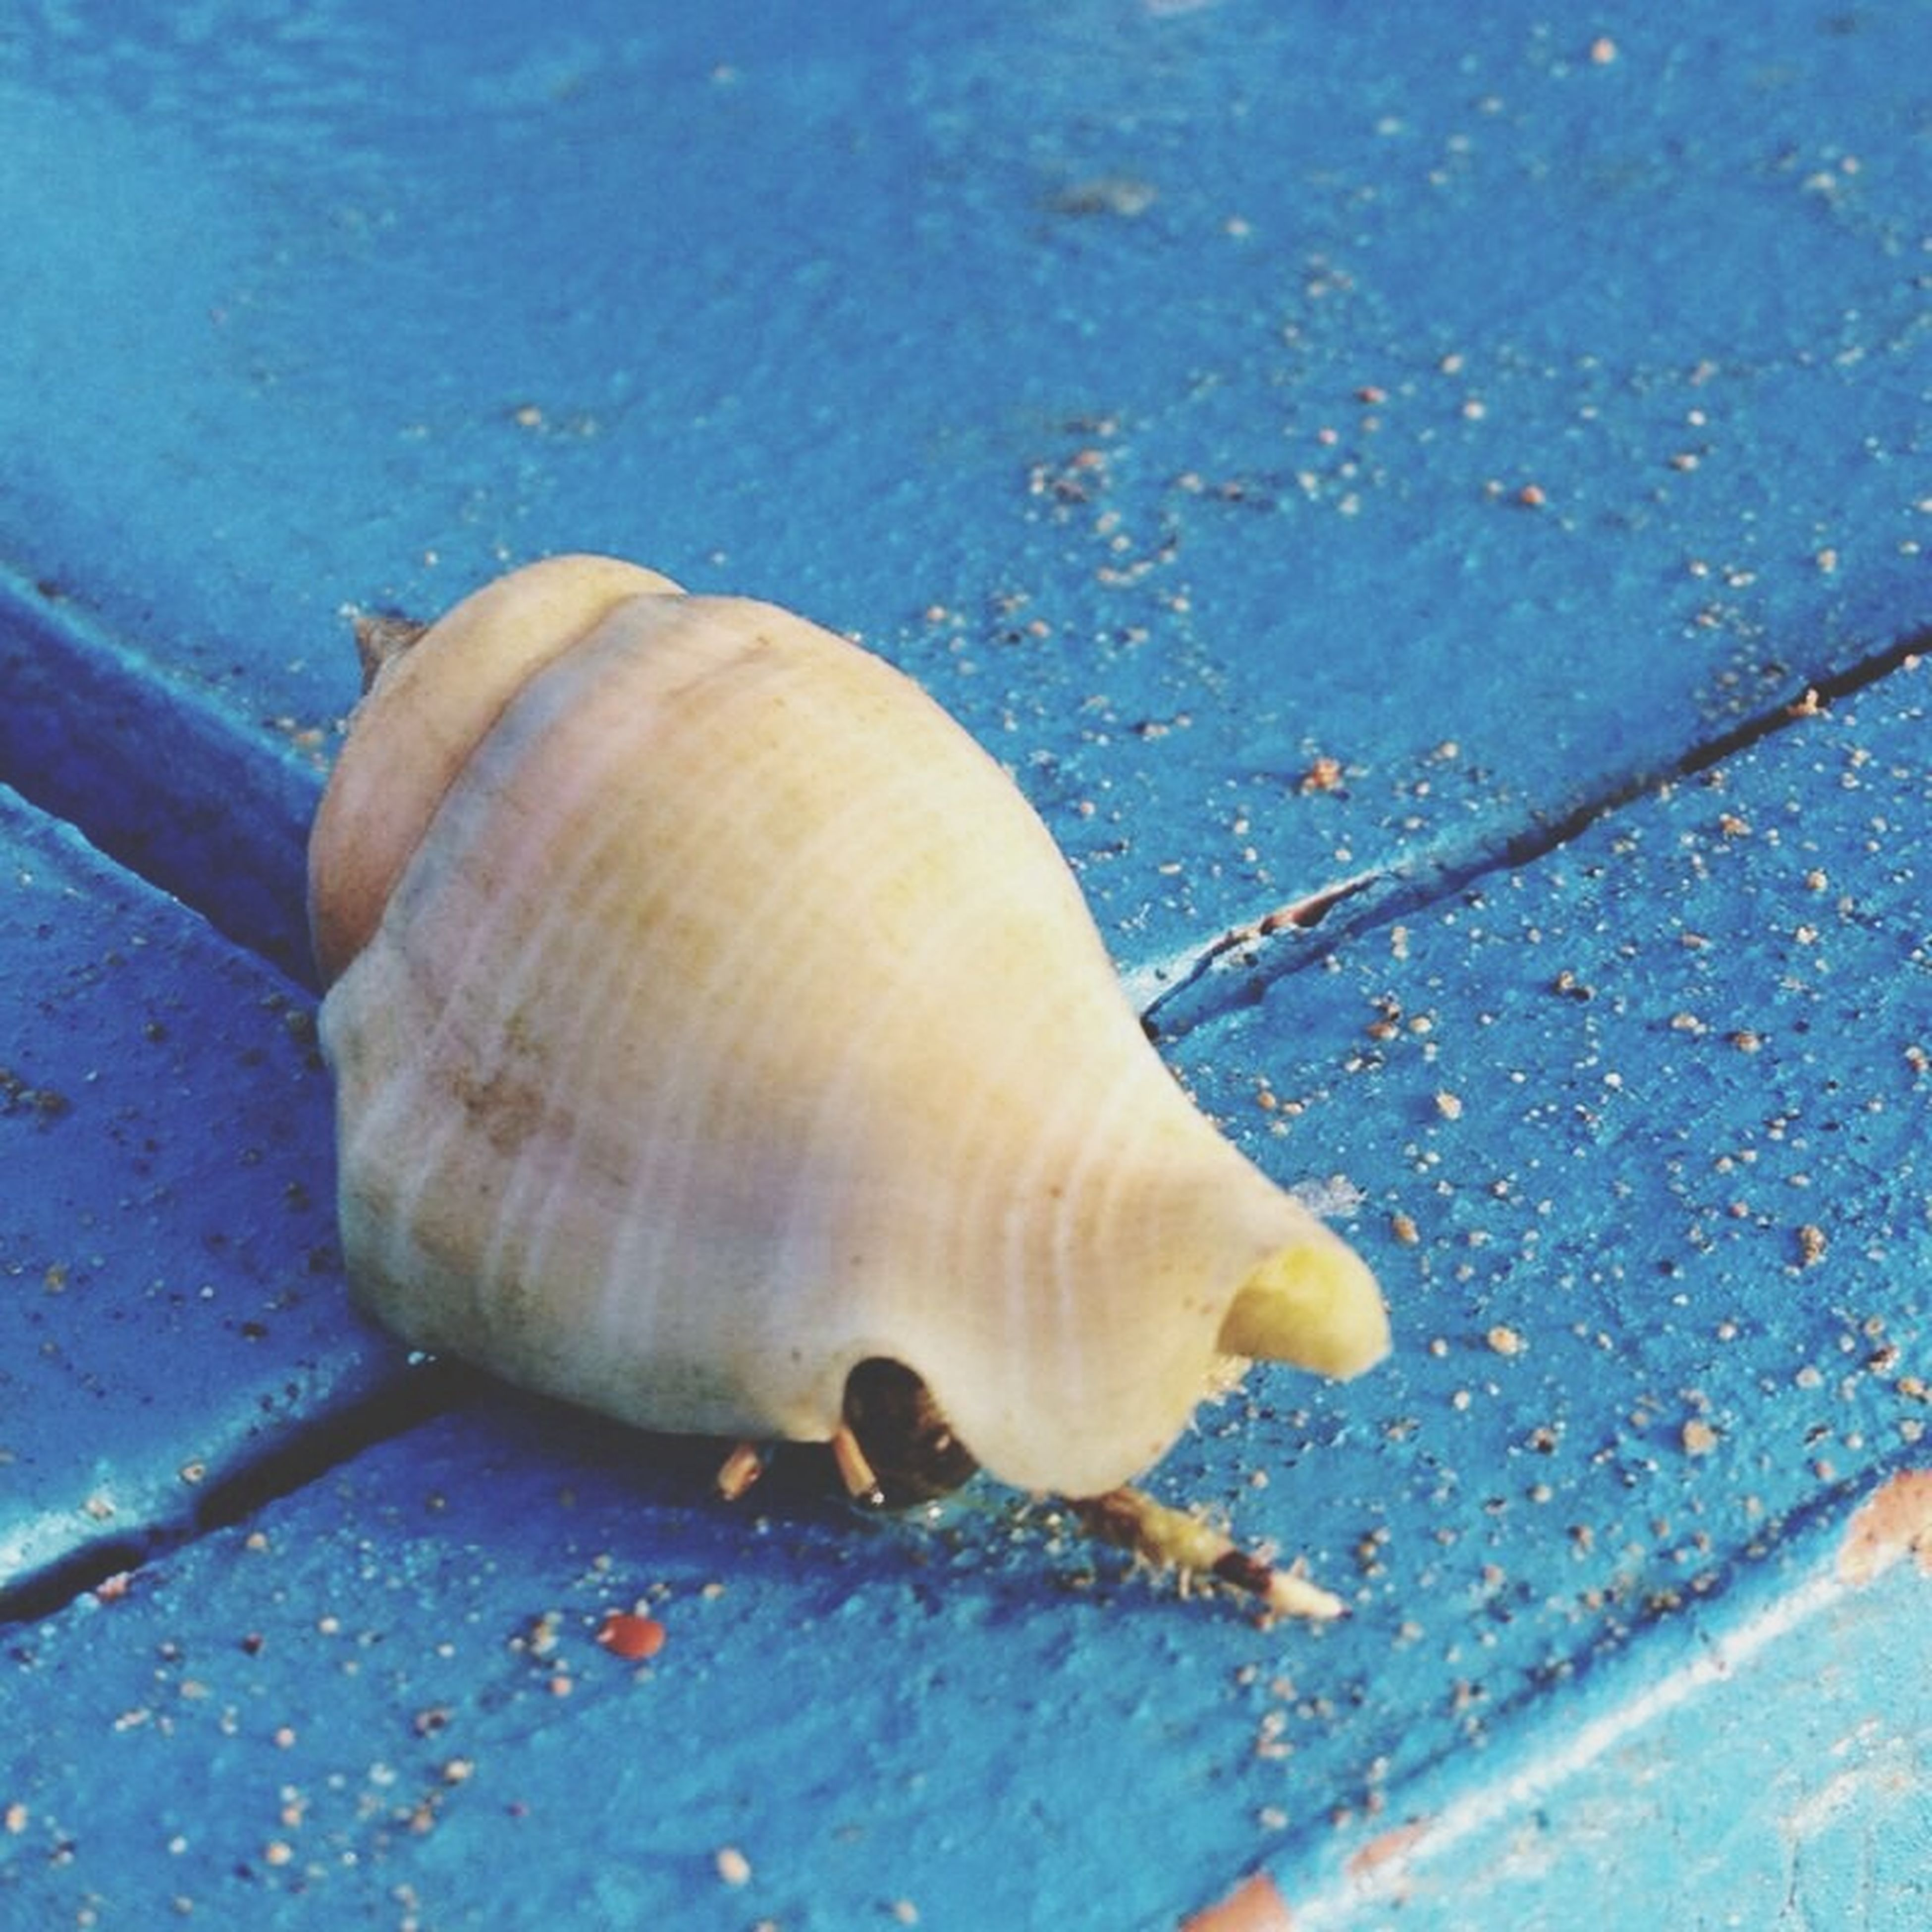 animal themes, animal shell, wildlife, animals in the wild, one animal, high angle view, water, snail, seashell, close-up, shell, nature, wet, no people, day, outdoors, sea life, blue, mollusk, sunlight